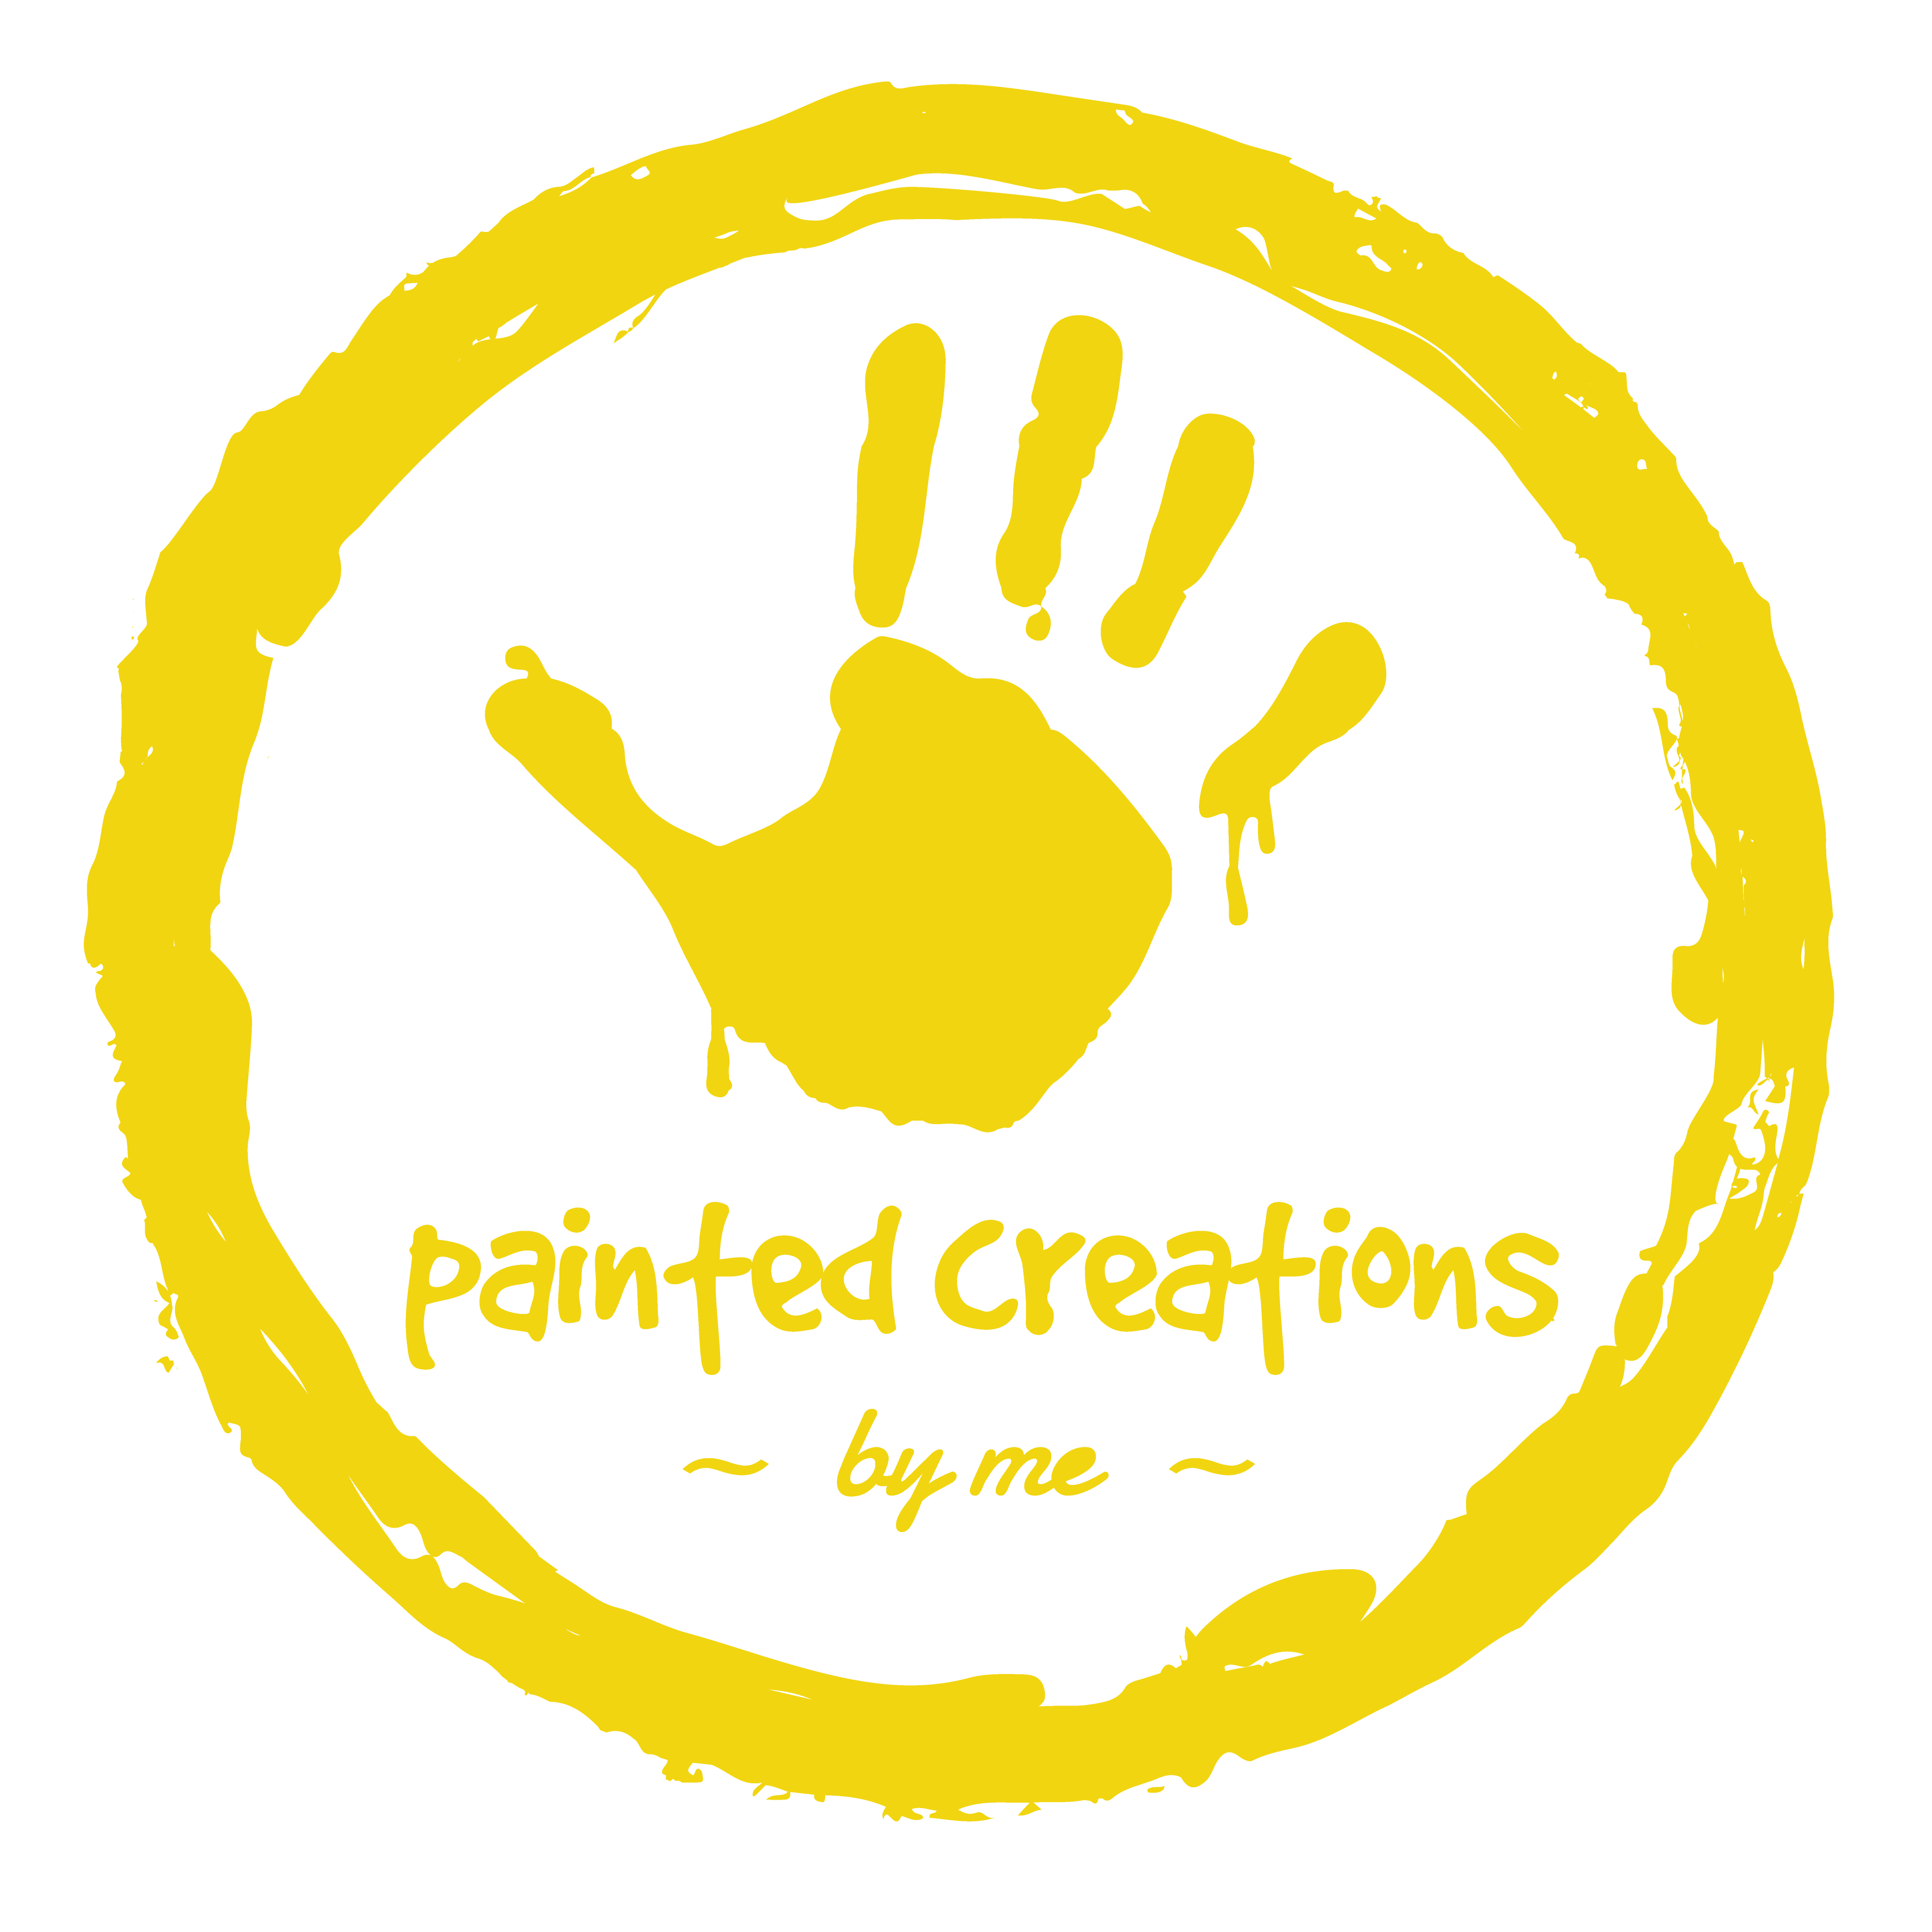 painted creations by me - yellow